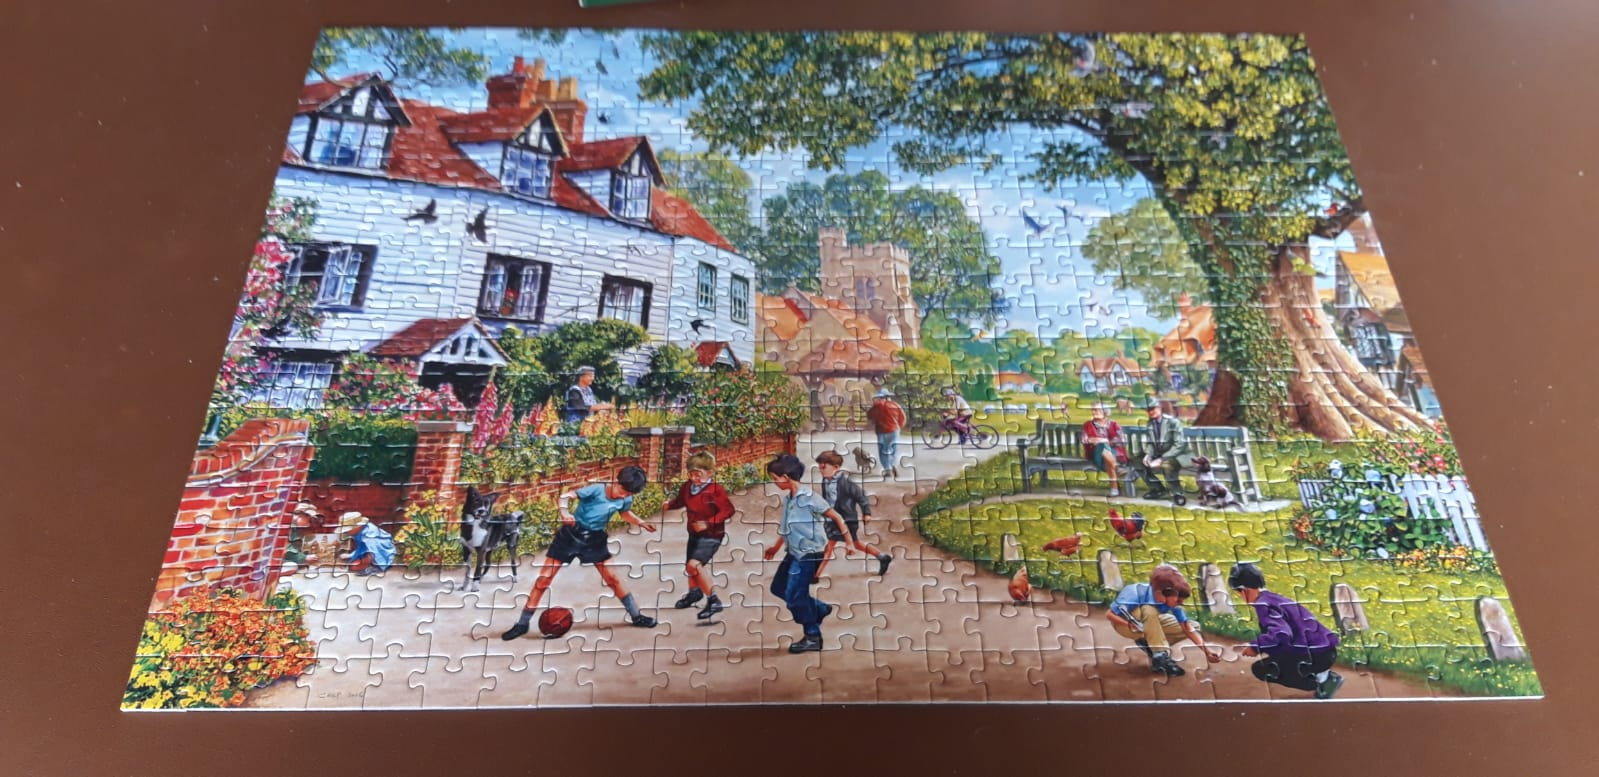 Pictures shared by dear Cynthia and Steve, facilitators of Friends for Life, jigsaws bought for our DEEP groups members. Thanks to Bring Joy Foundation that made it possible to buy the jigsaws.